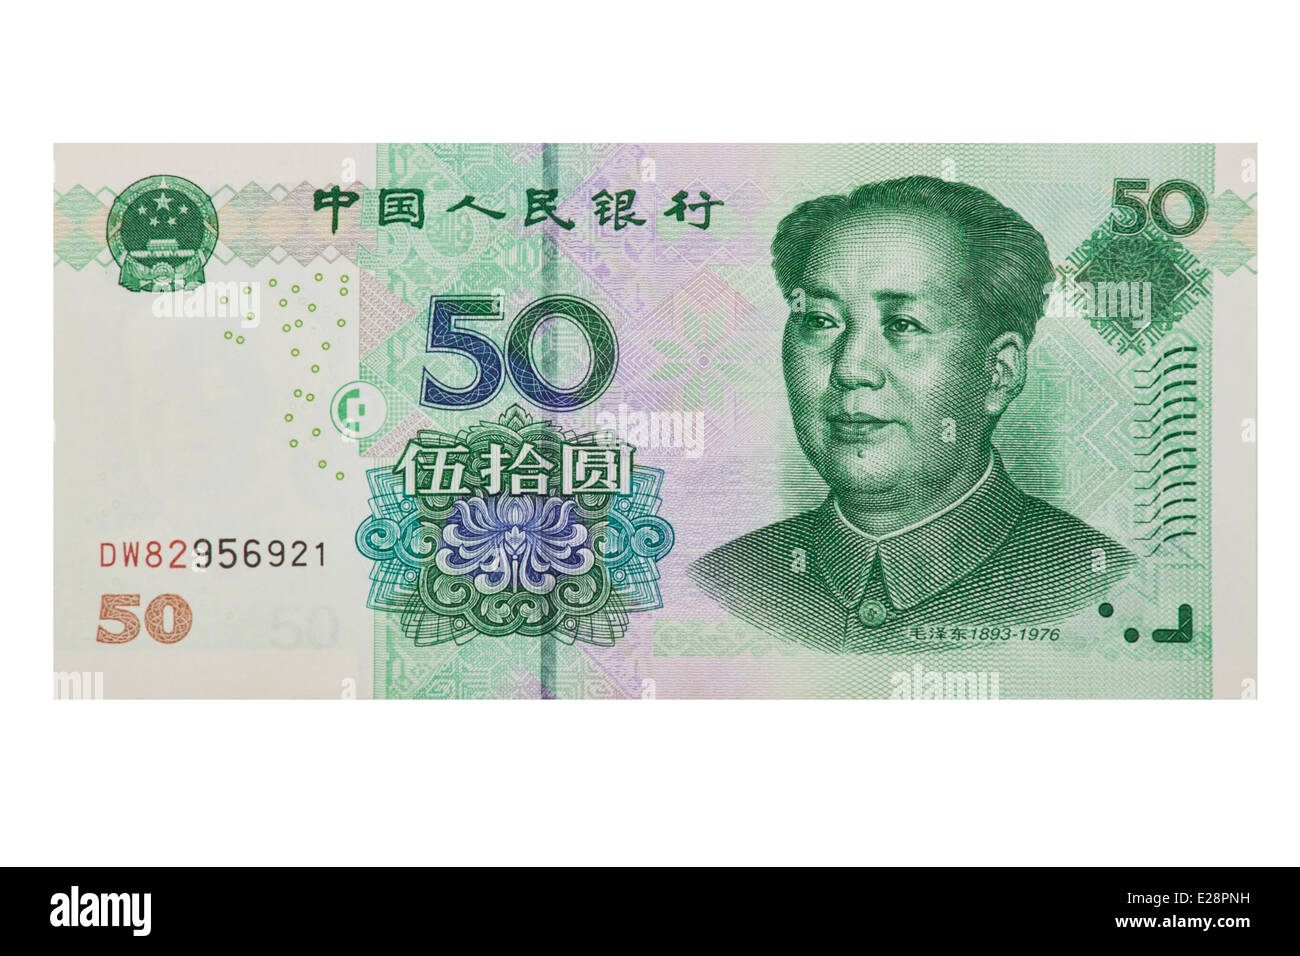 50 chinese yuan renminbi the currency of the peoples republic chinese 50 rmb or yuan featuring chairman mao on the front of each bill isolated on biocorpaavc Images